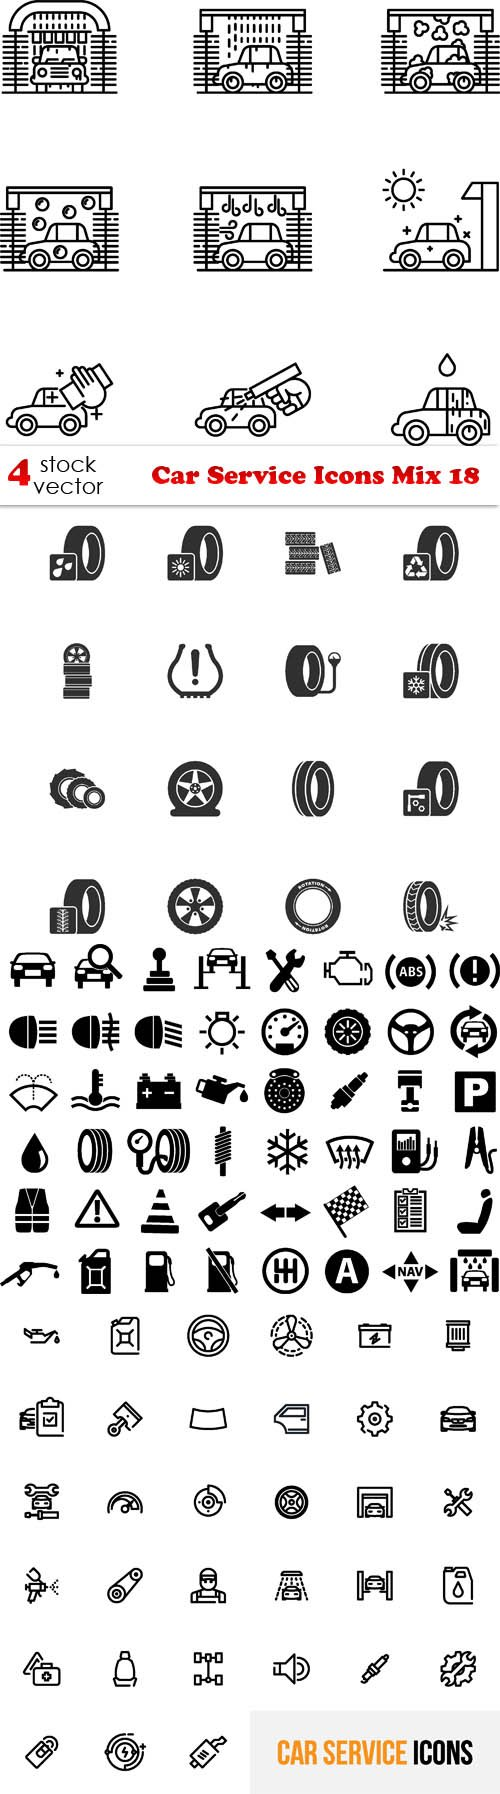 Vectors - Car Service Icons Mix 18